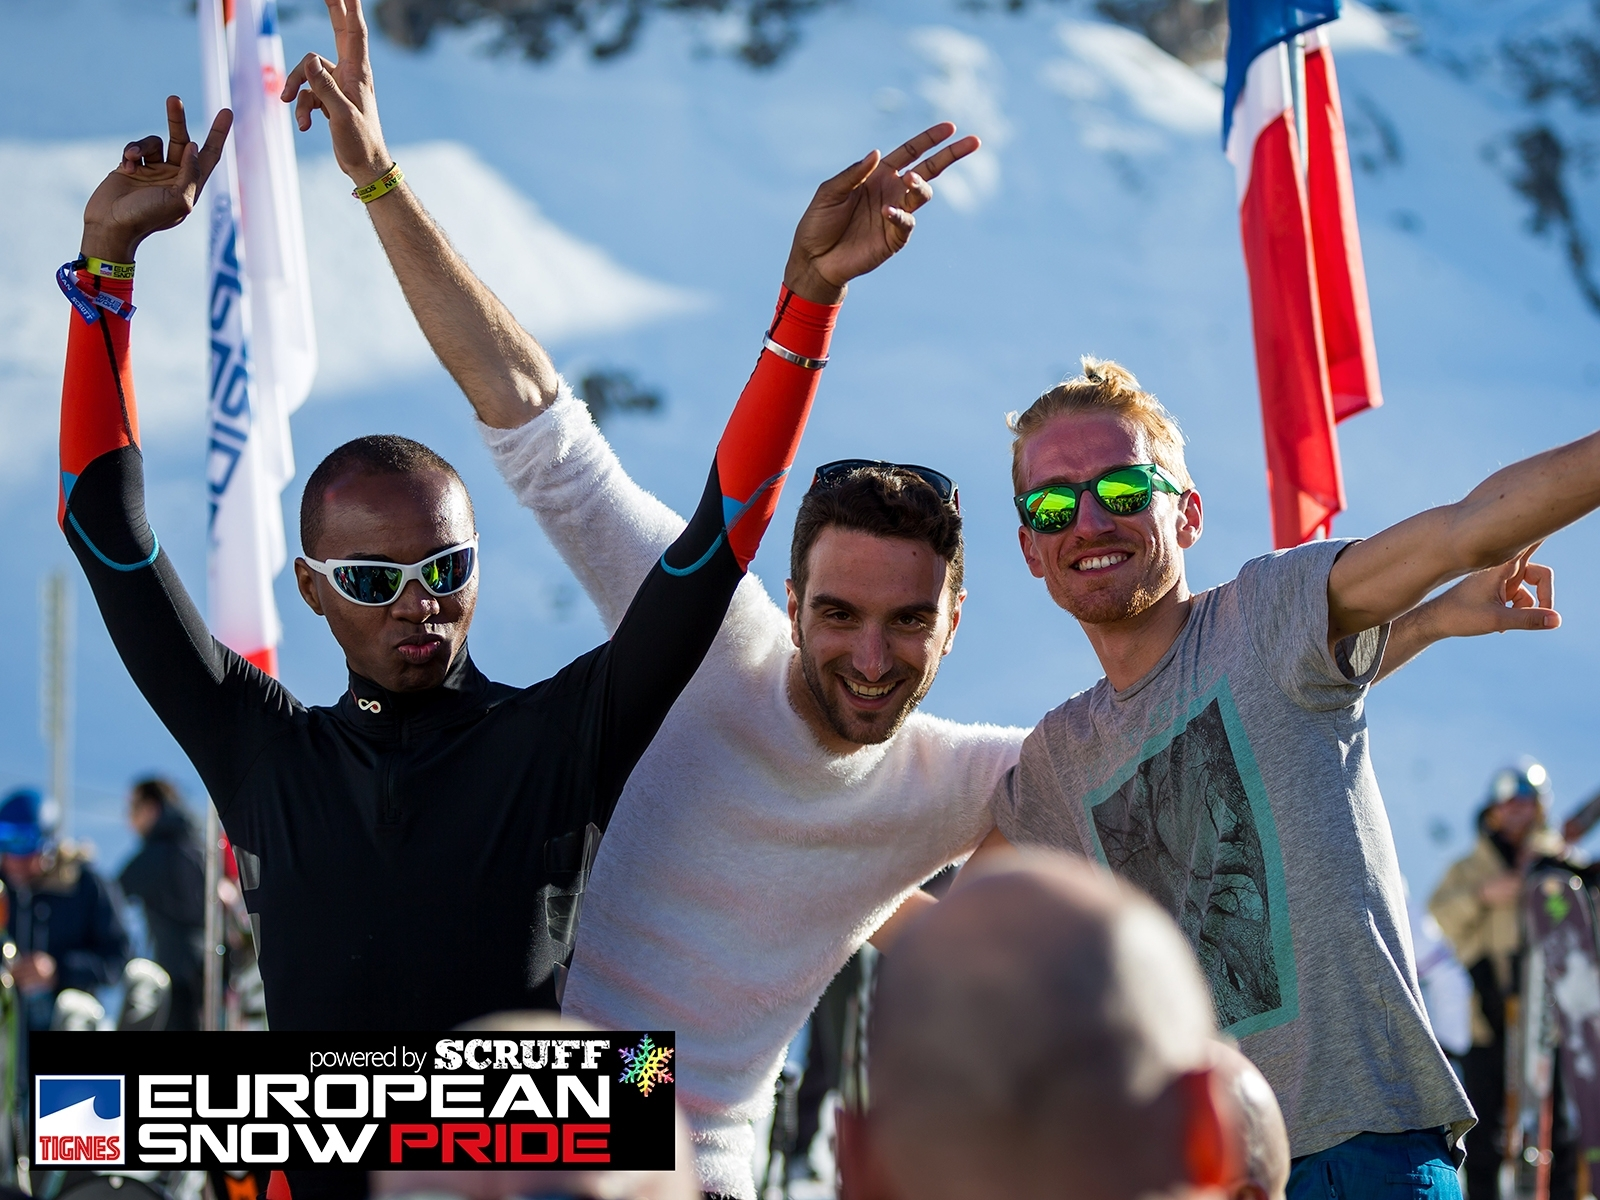 European Snow Pride Powered by SCRUFF: the 2018 program